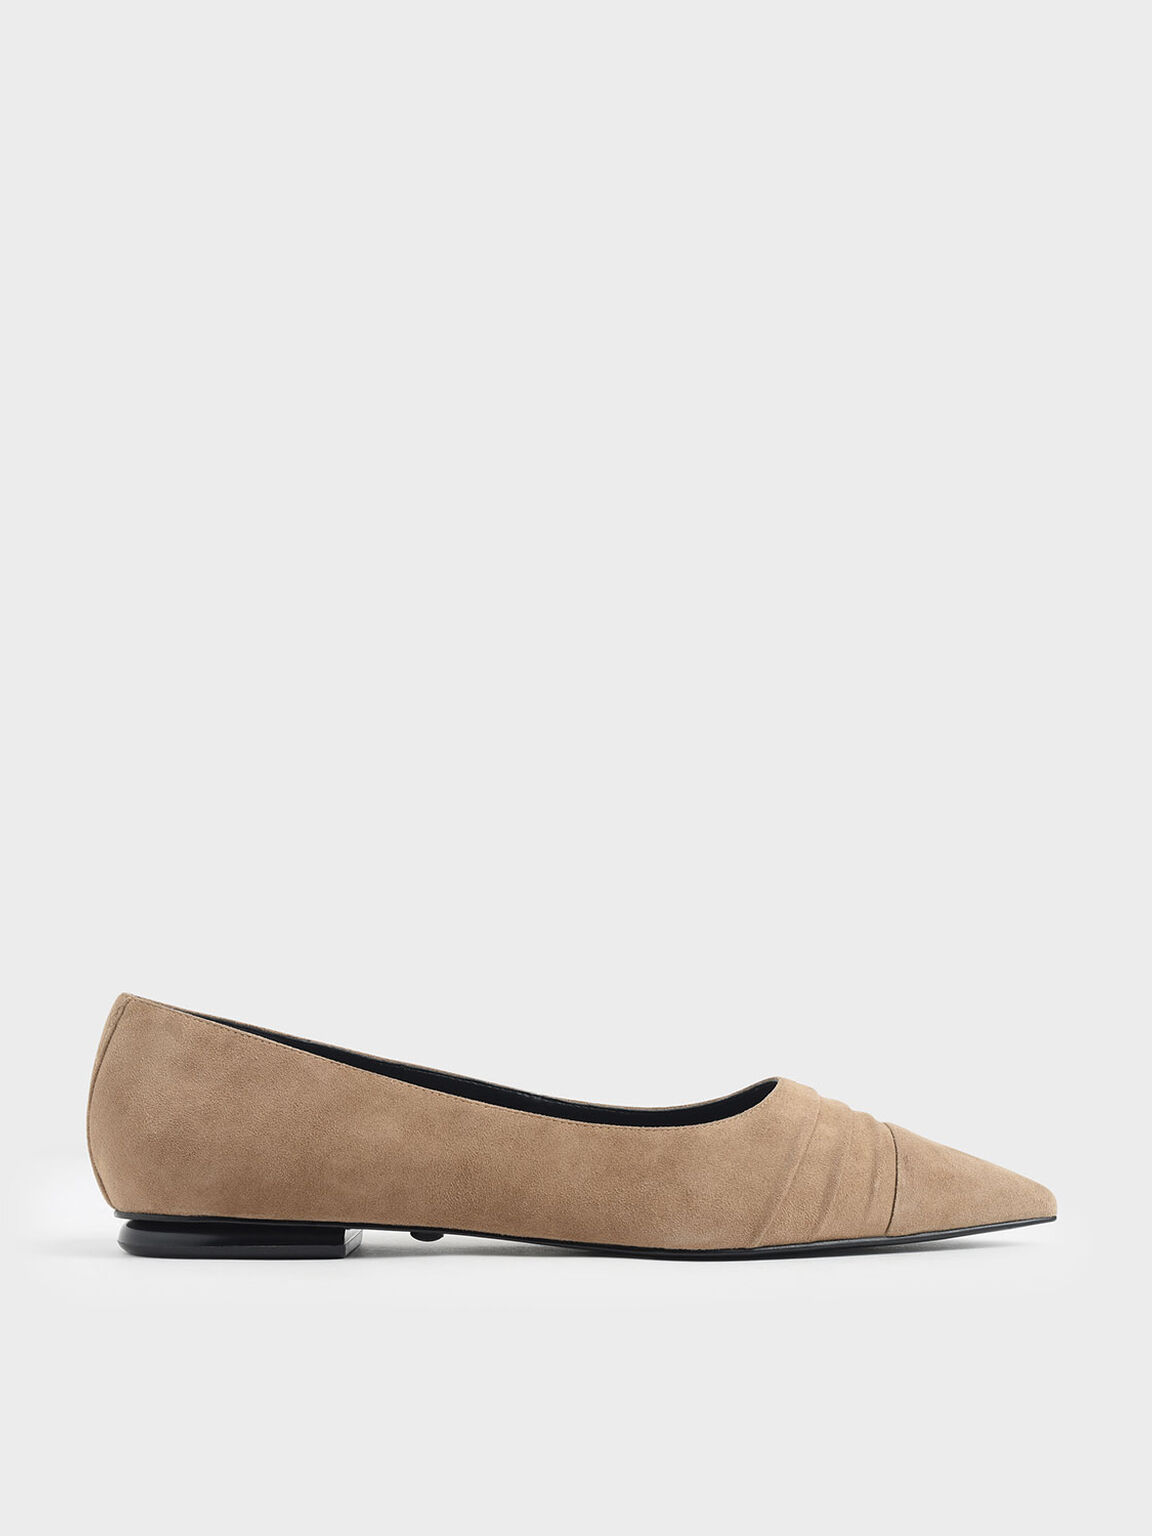 Ruched Ballerina Flats (Kid Suede), Taupe, hi-res